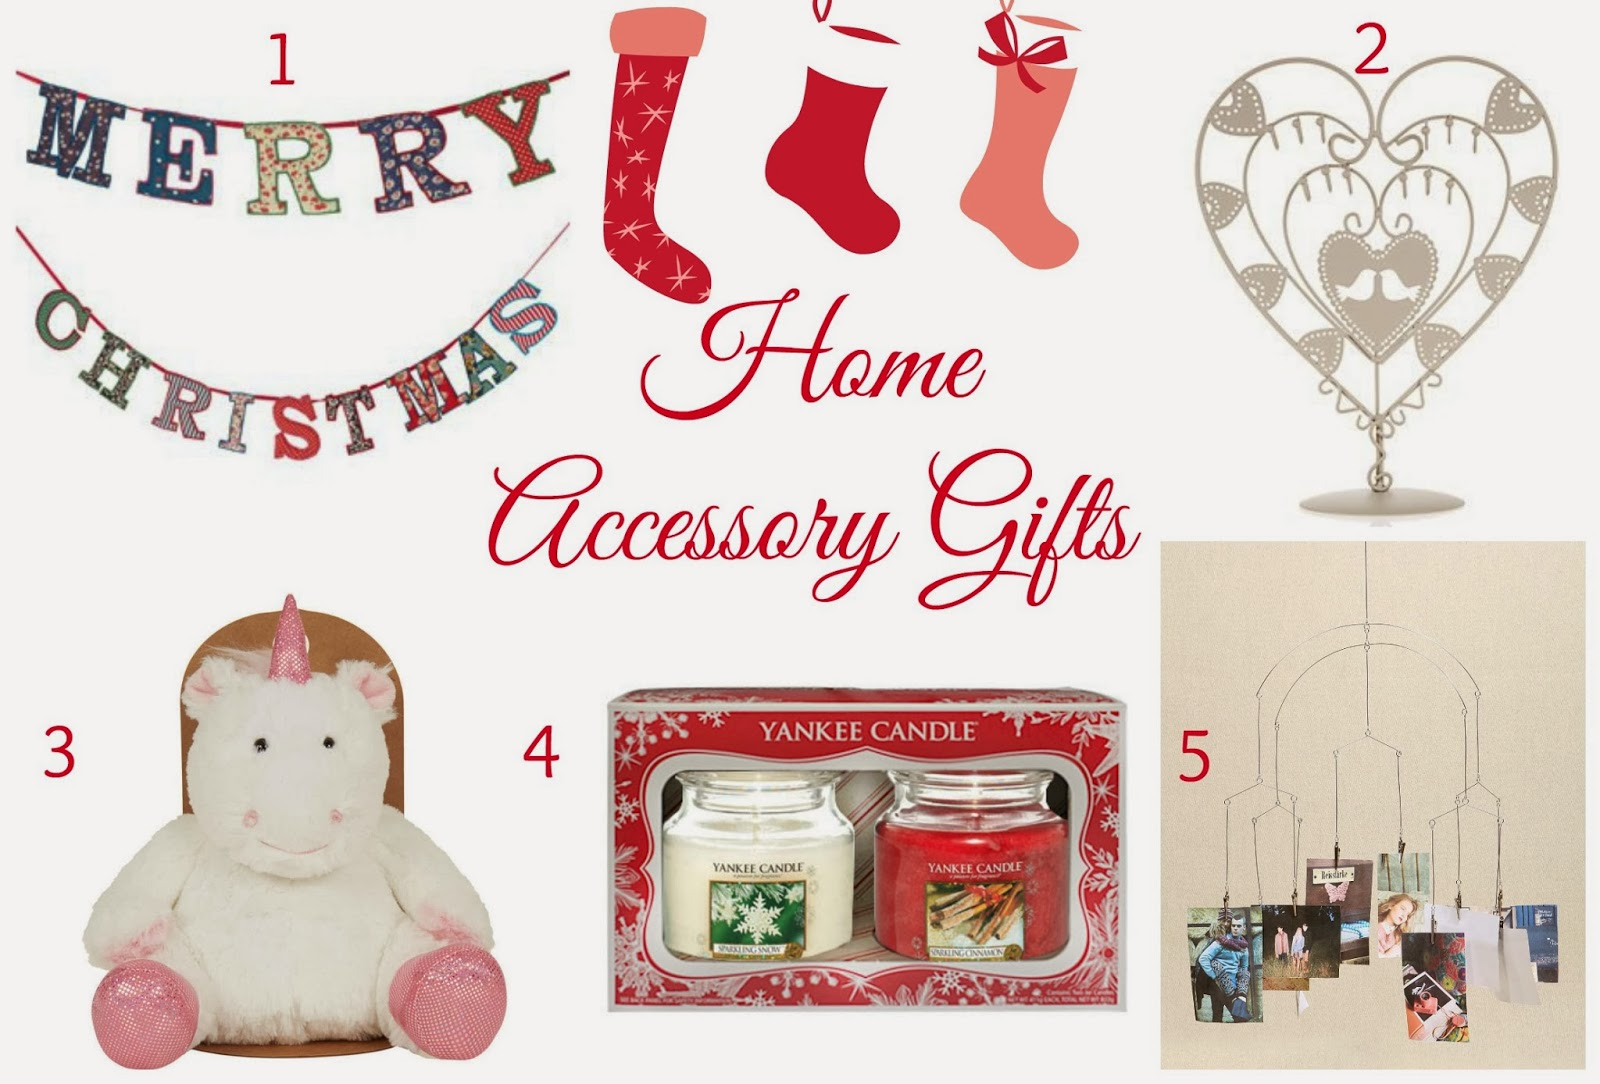 Oh Hey Kayspray..: Home Accessory Gifts under £20